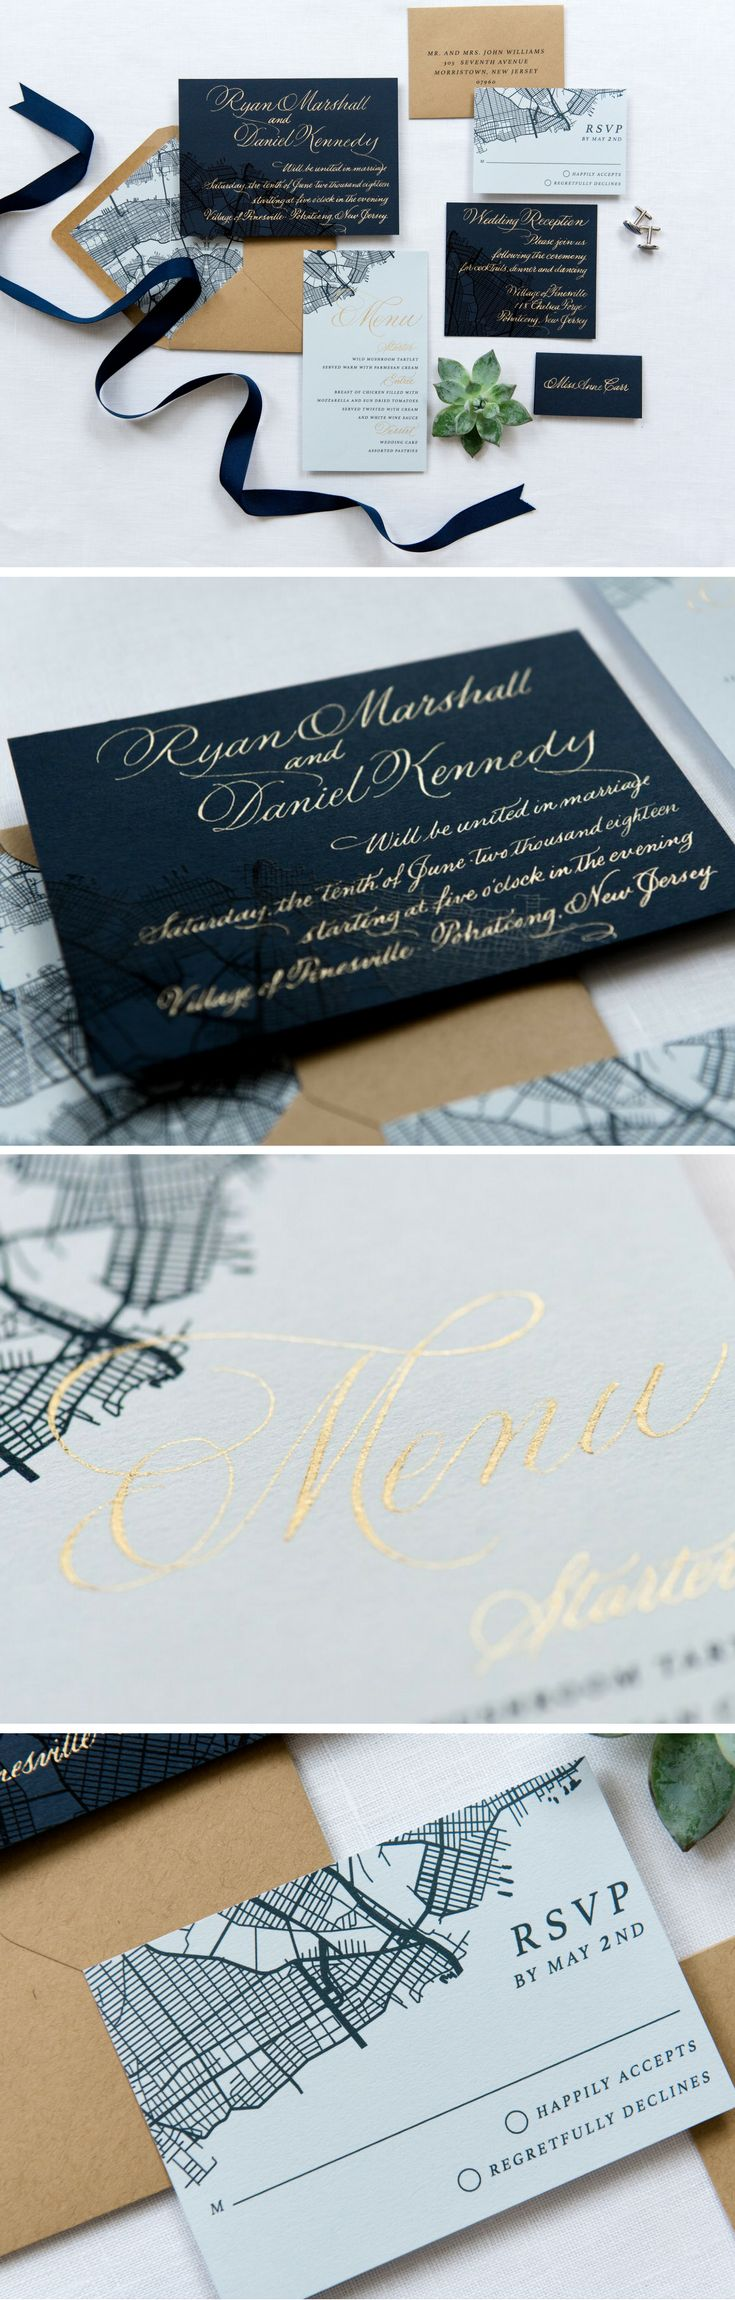 A custom gold hand calligraphy wedding invitation with map details.